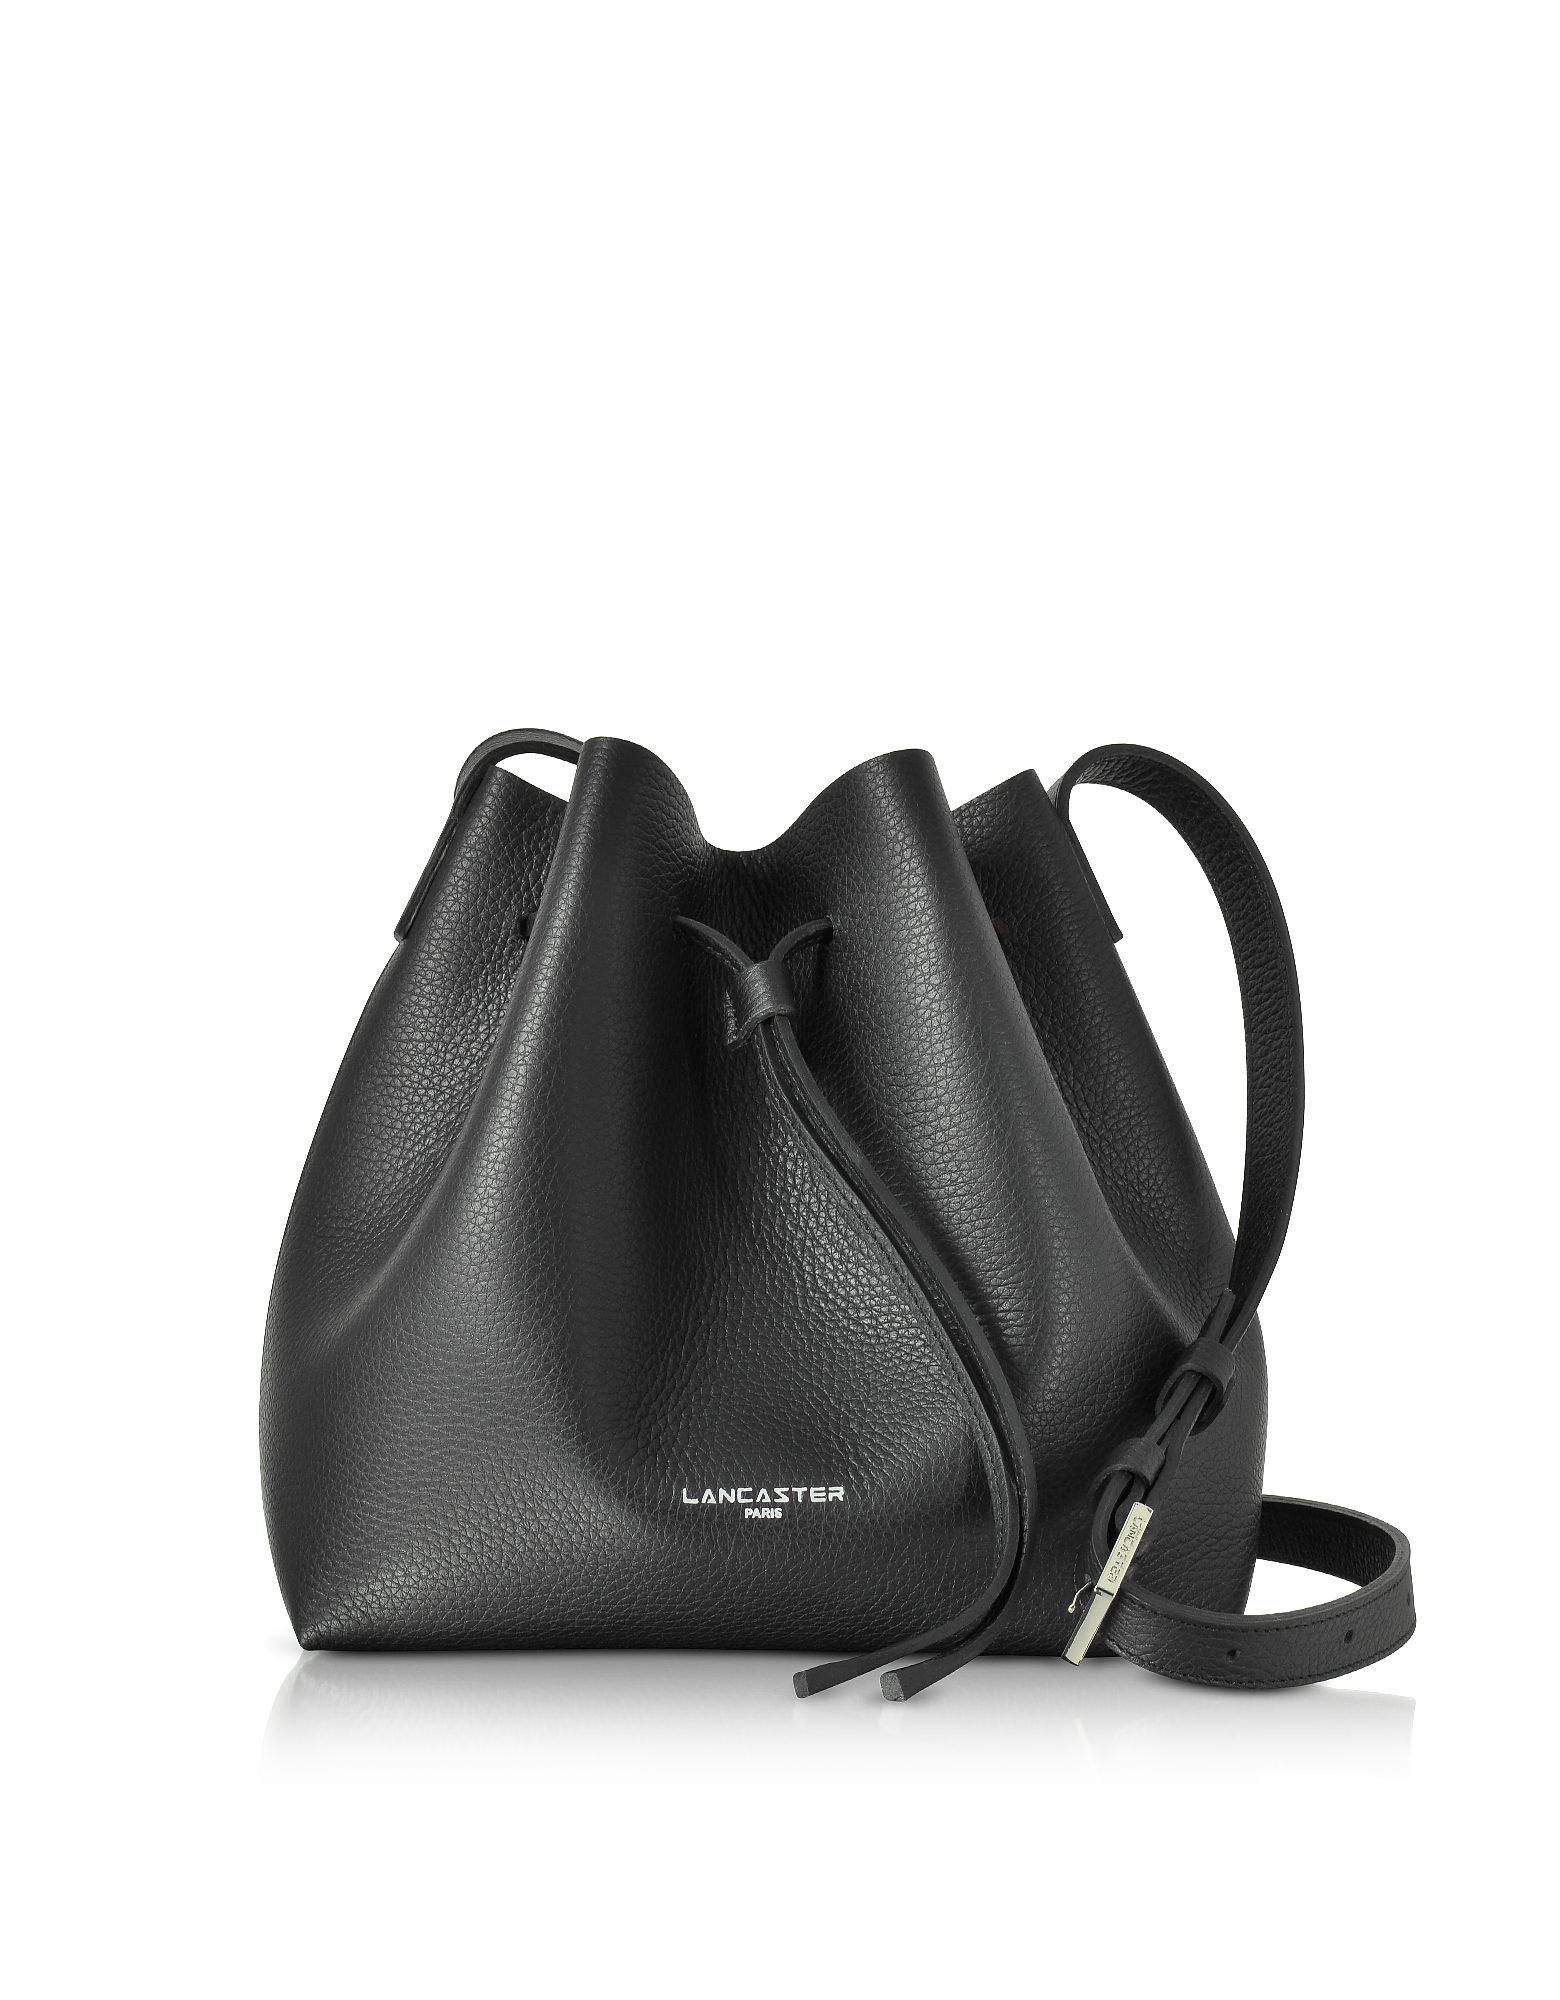 Pur & Element Foulonné Black Leather Bucket Bag